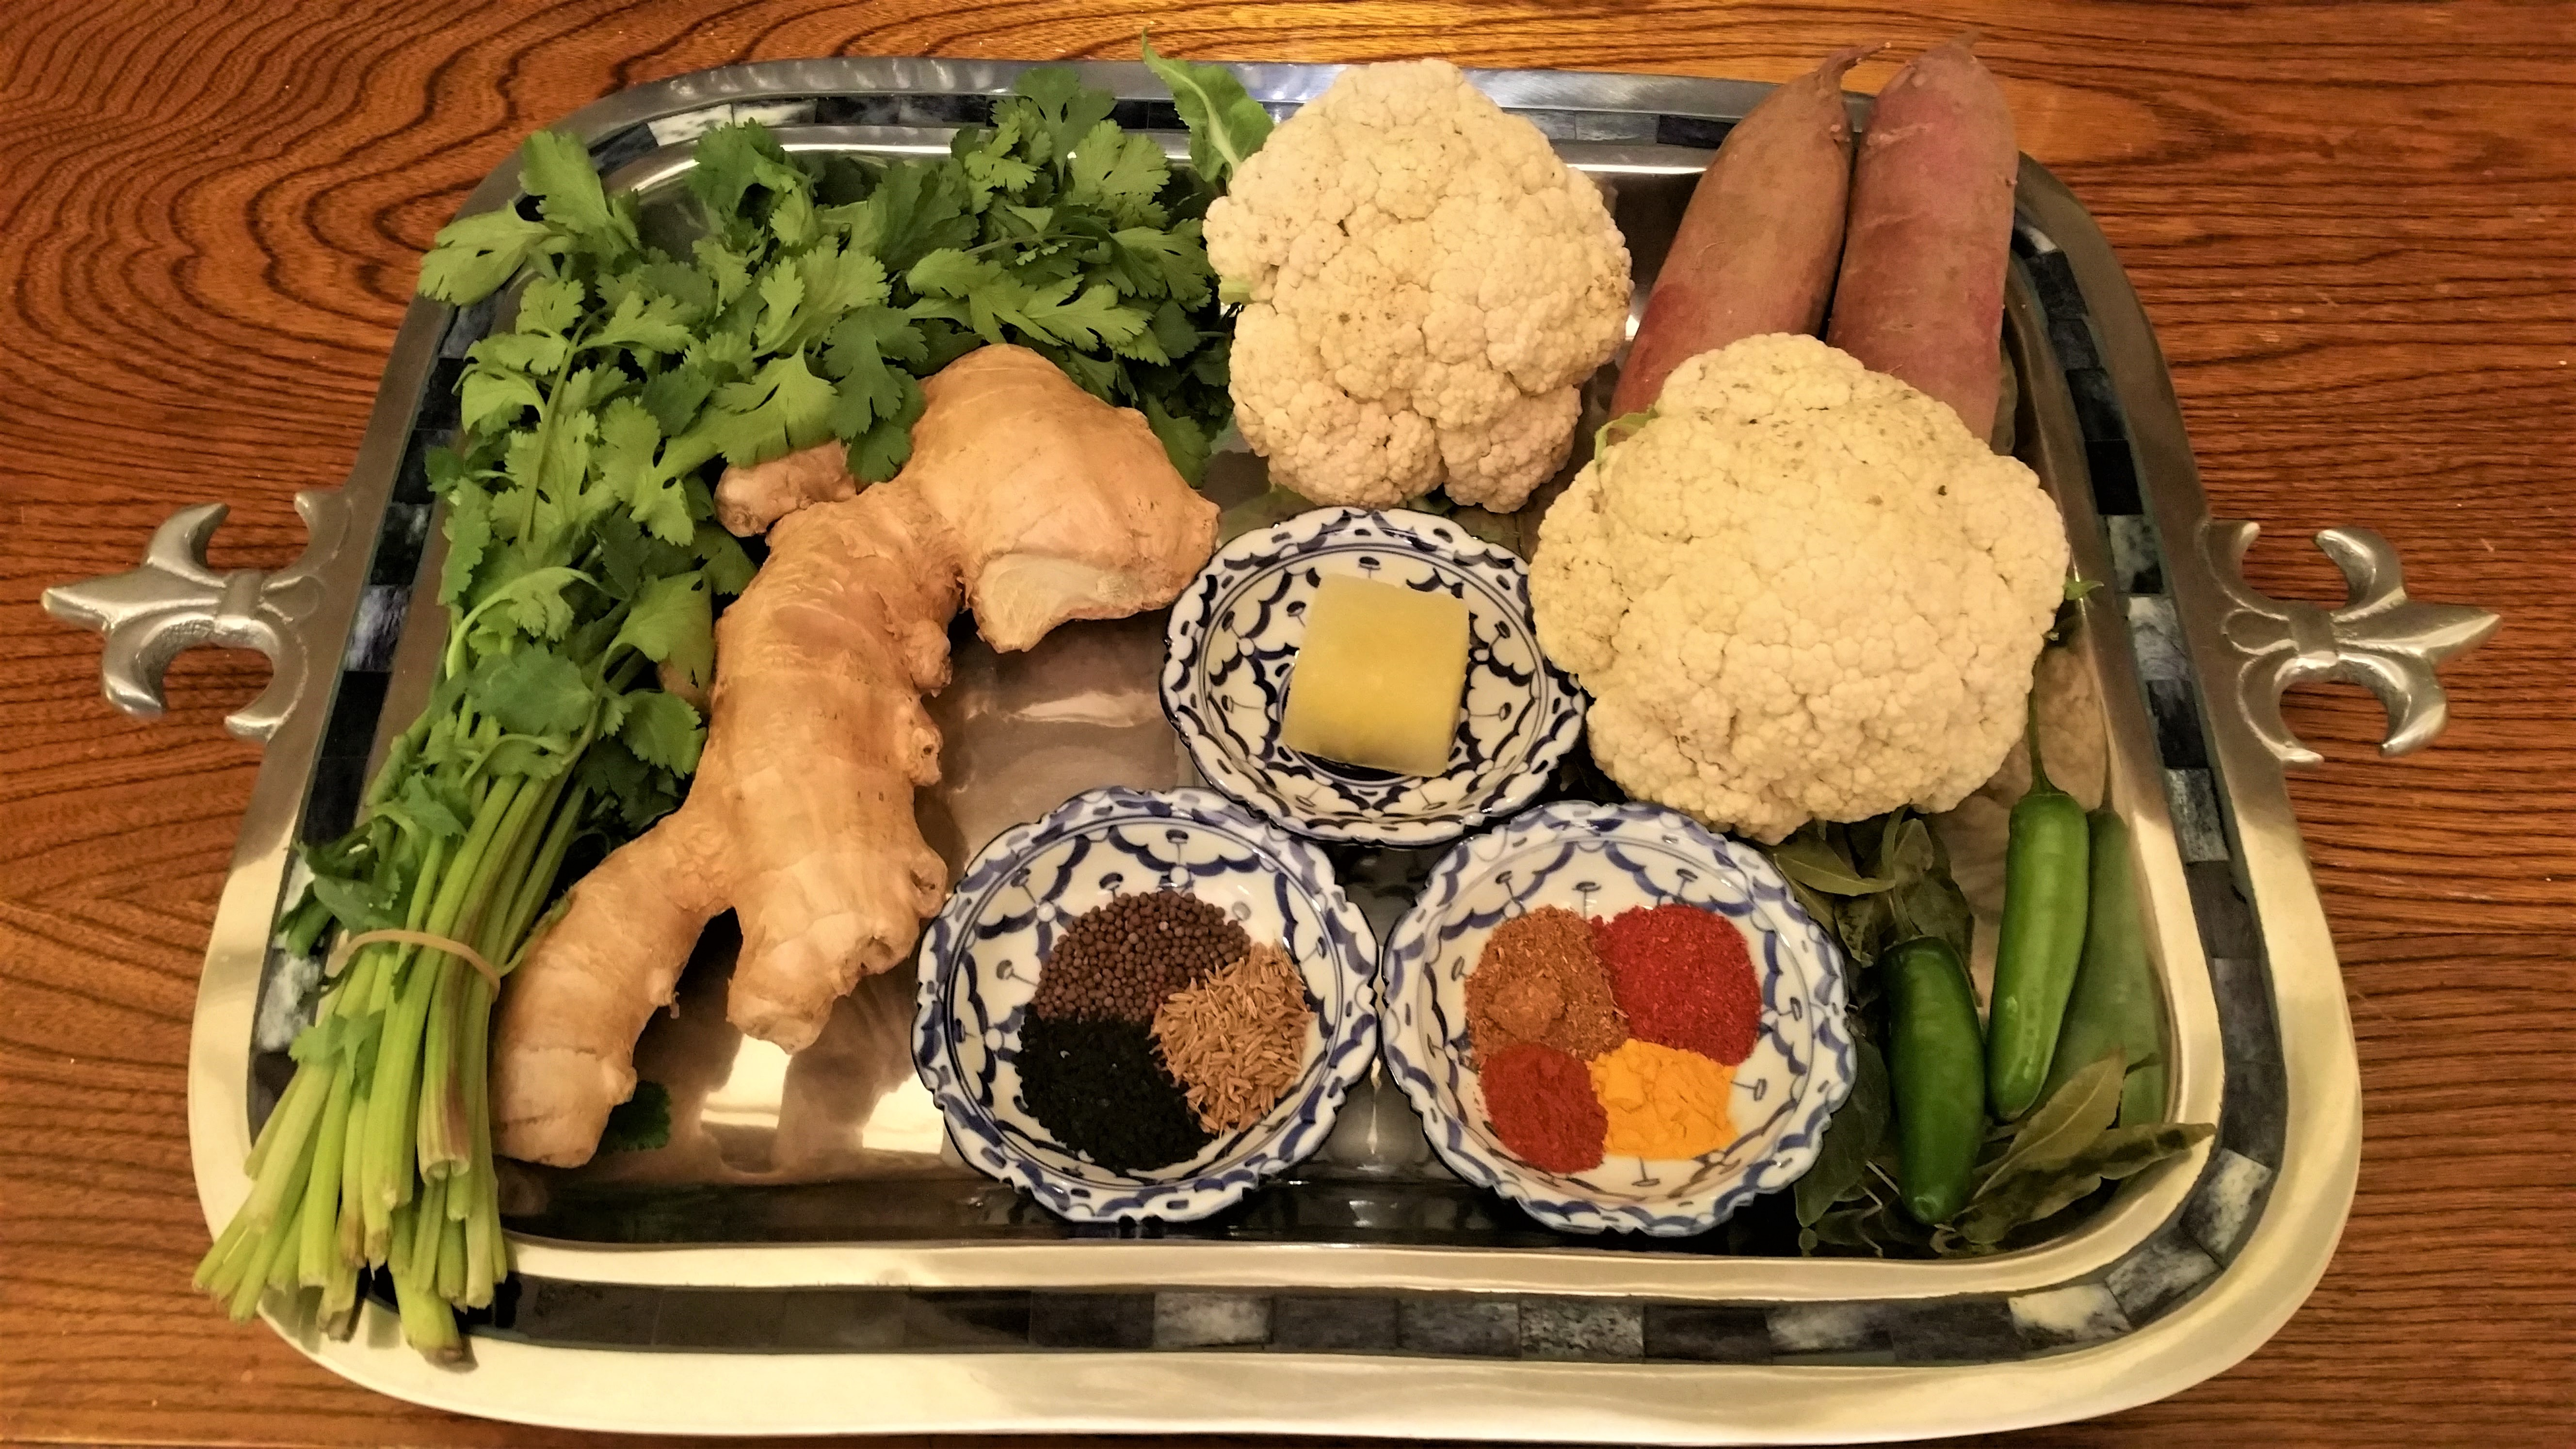 Braised Cauliflower and Swee Potato Ingredients